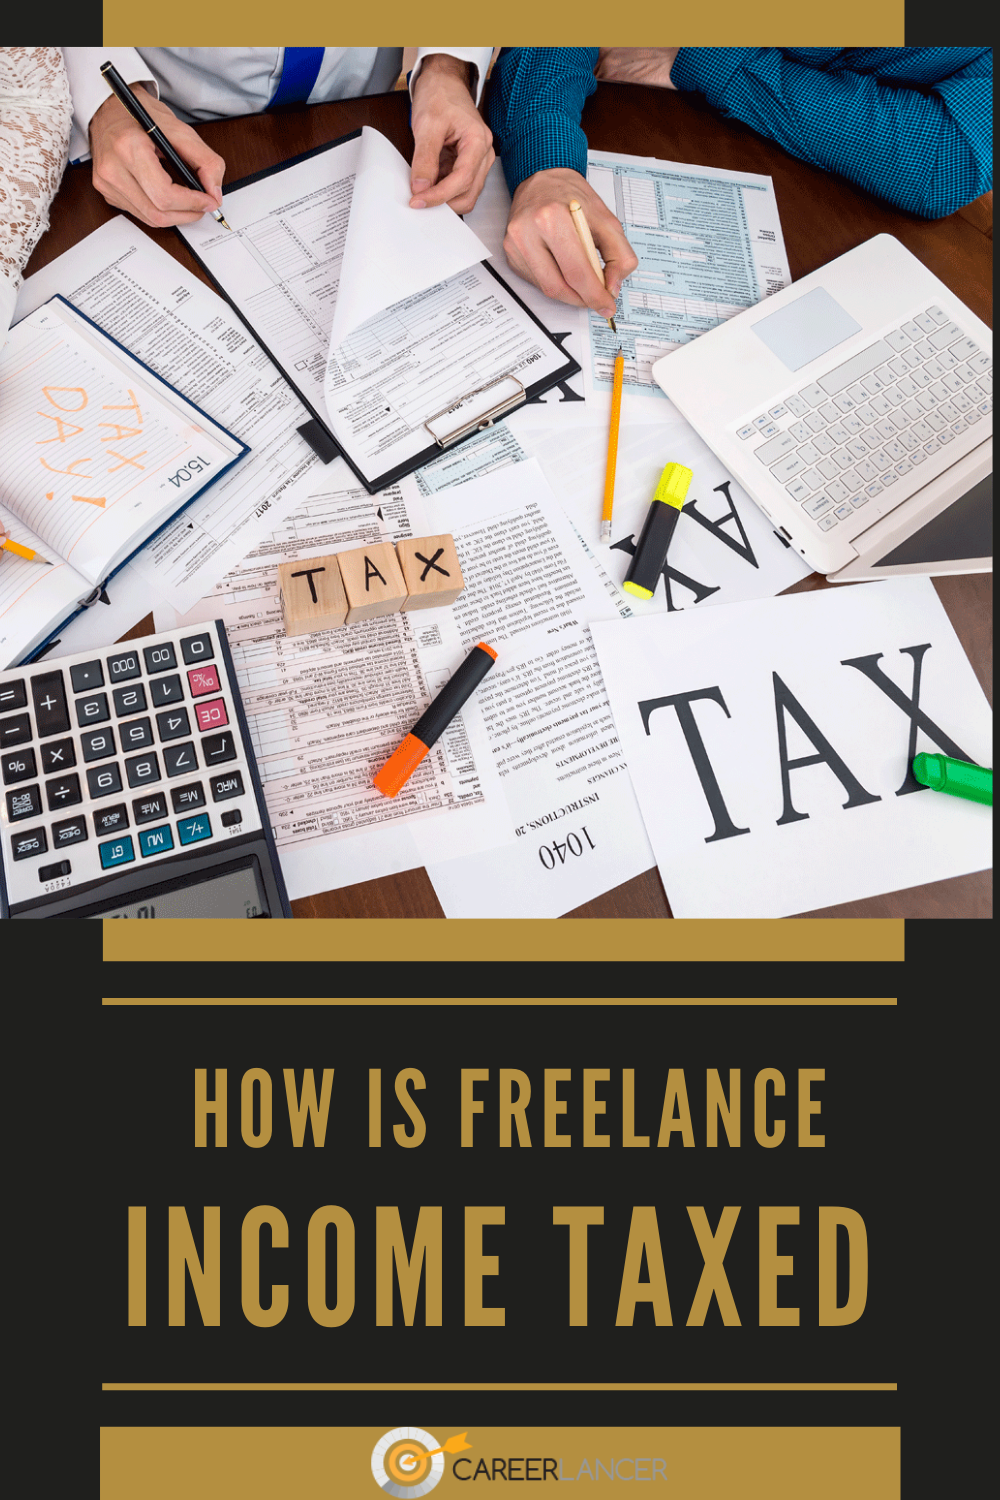 How Is Freelance Income Taxed Careerlancer In 2020 Freelance Income Income Tax Freelance